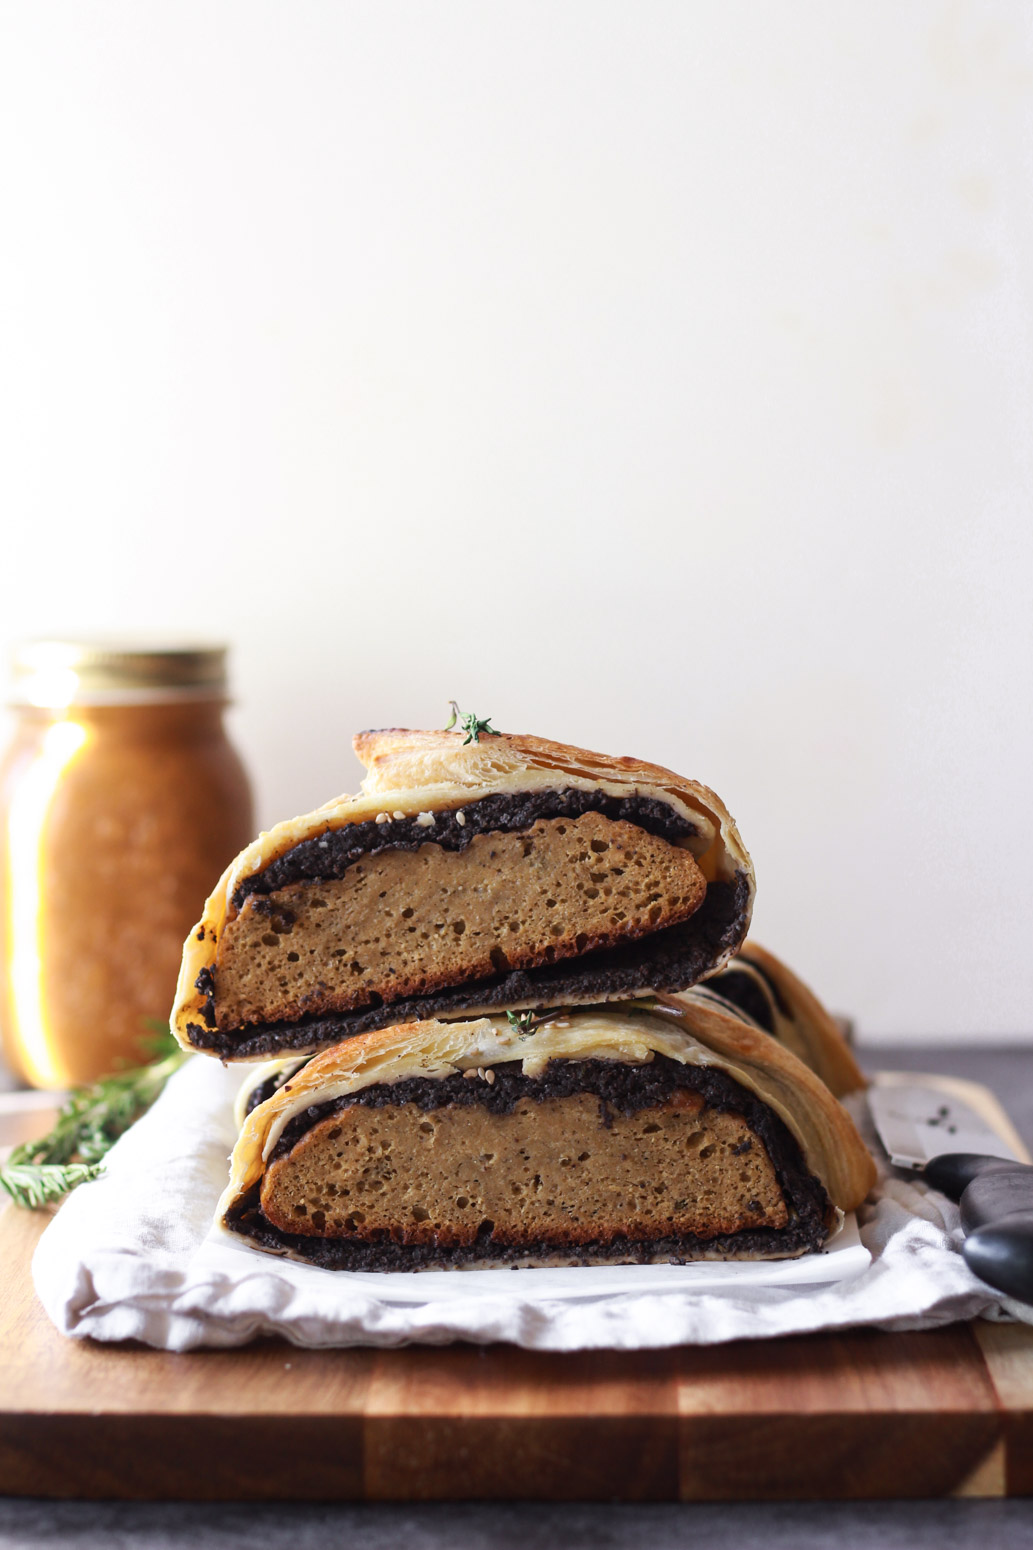 vegan seitan wellington holiday roast thanksgiving vegetarian beef zenandzaatar recipe